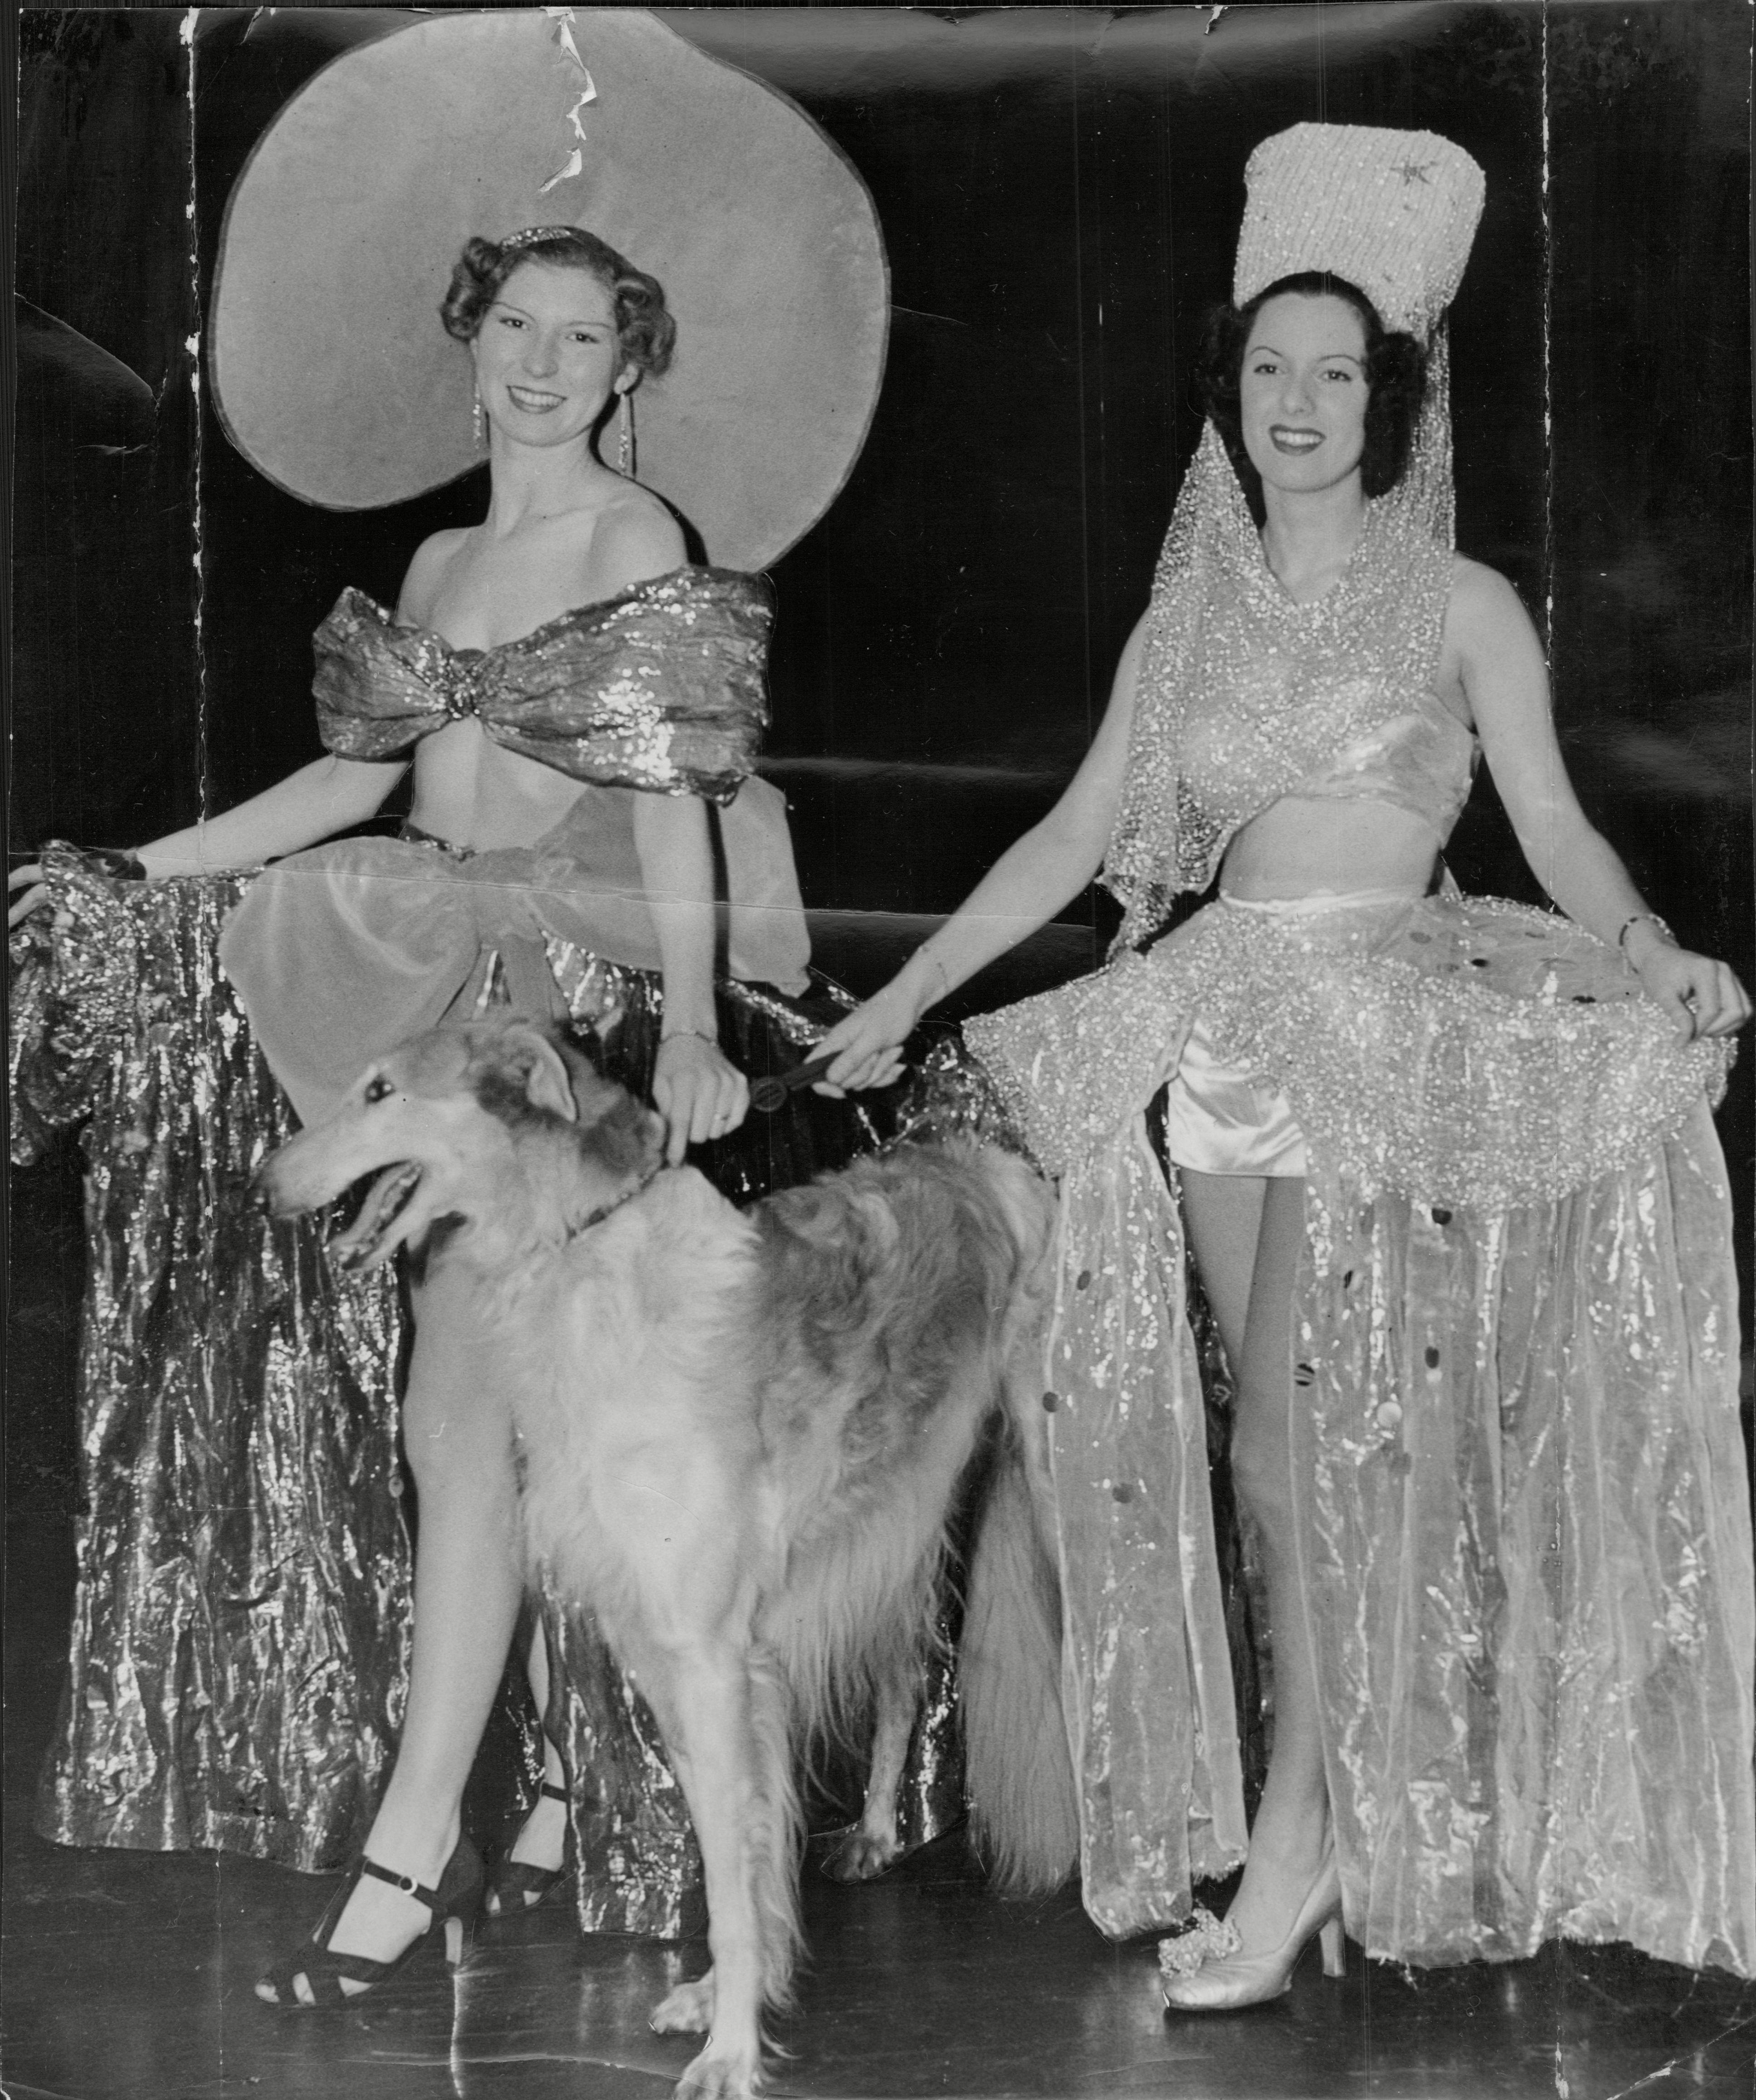 All Dressed Up With Somewhere To Go On New Years Eve- The Chelsea Arts Ball Flaming Youth Is The Theme For The Tableaux. 23 Dec 1937